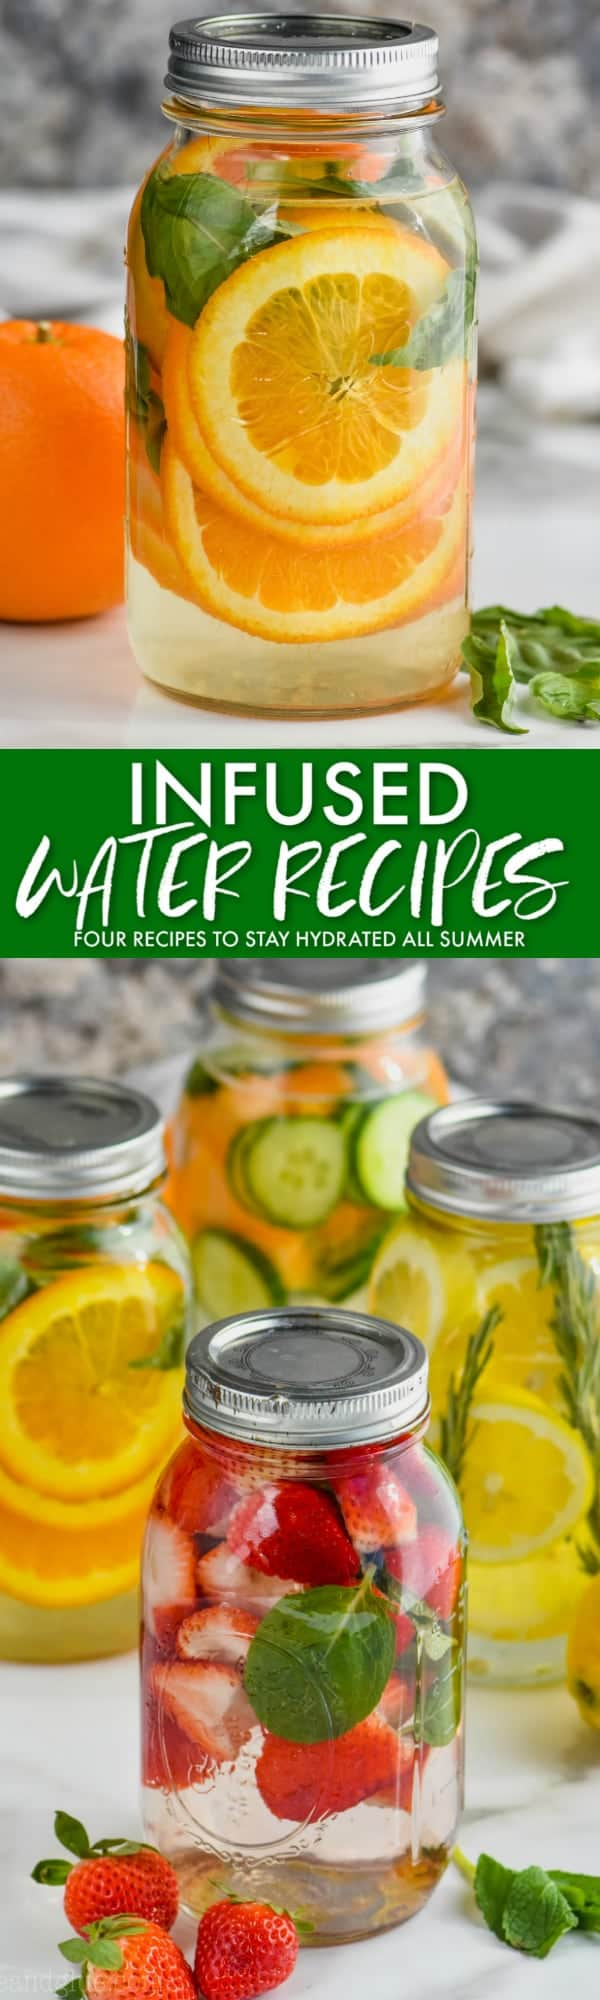 collage of infused water recipes